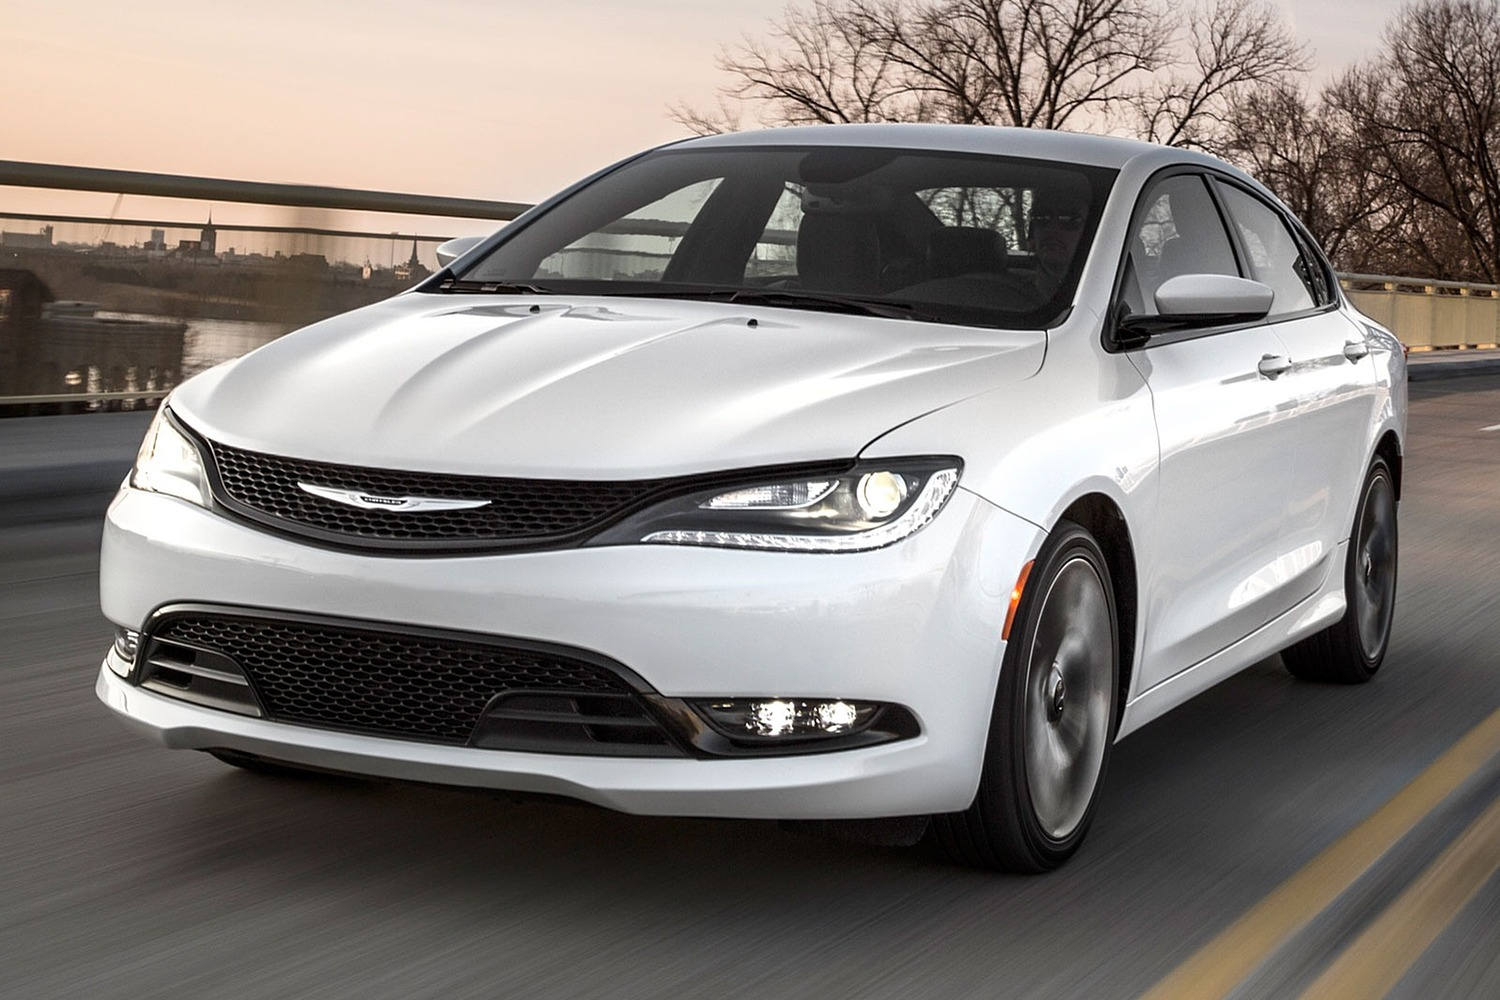 2016 Chrysler 200 S Sedan Exterior